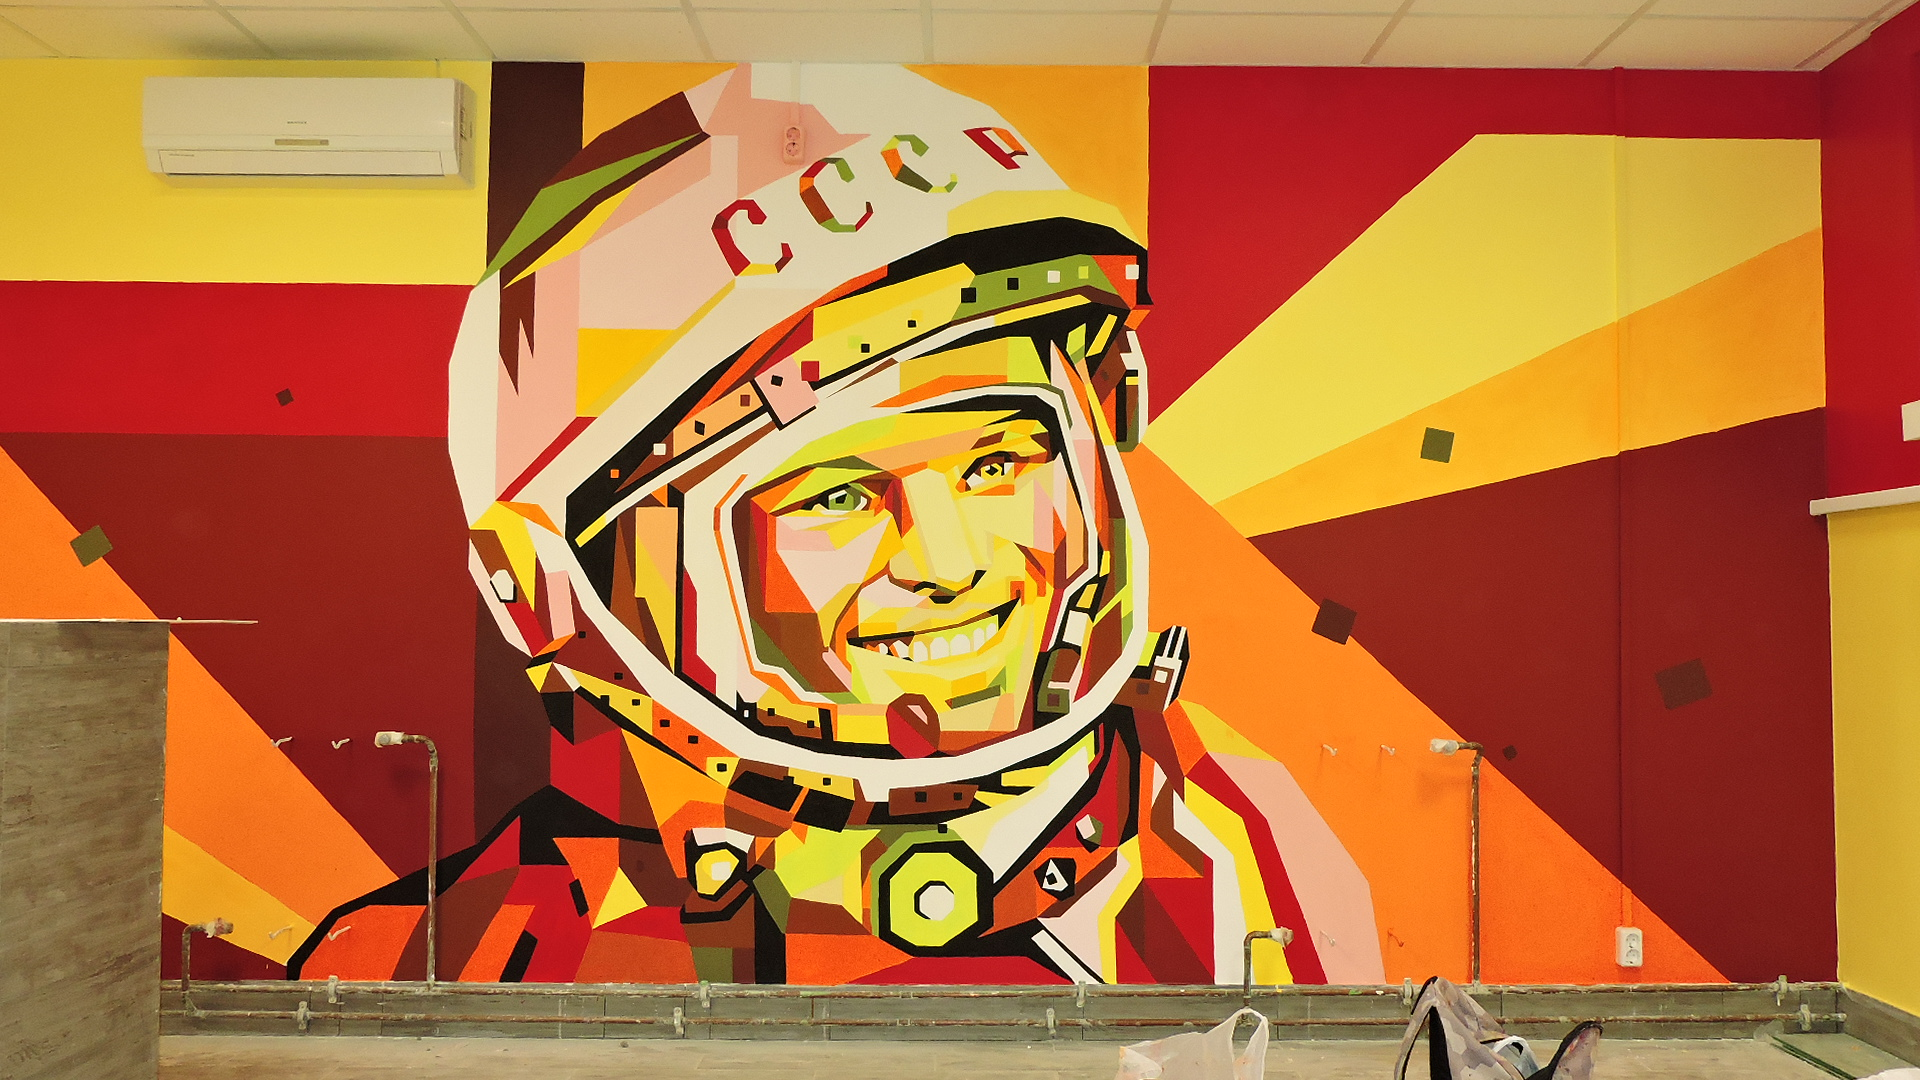 On the wall painted Gagarin's face in a spacesuit